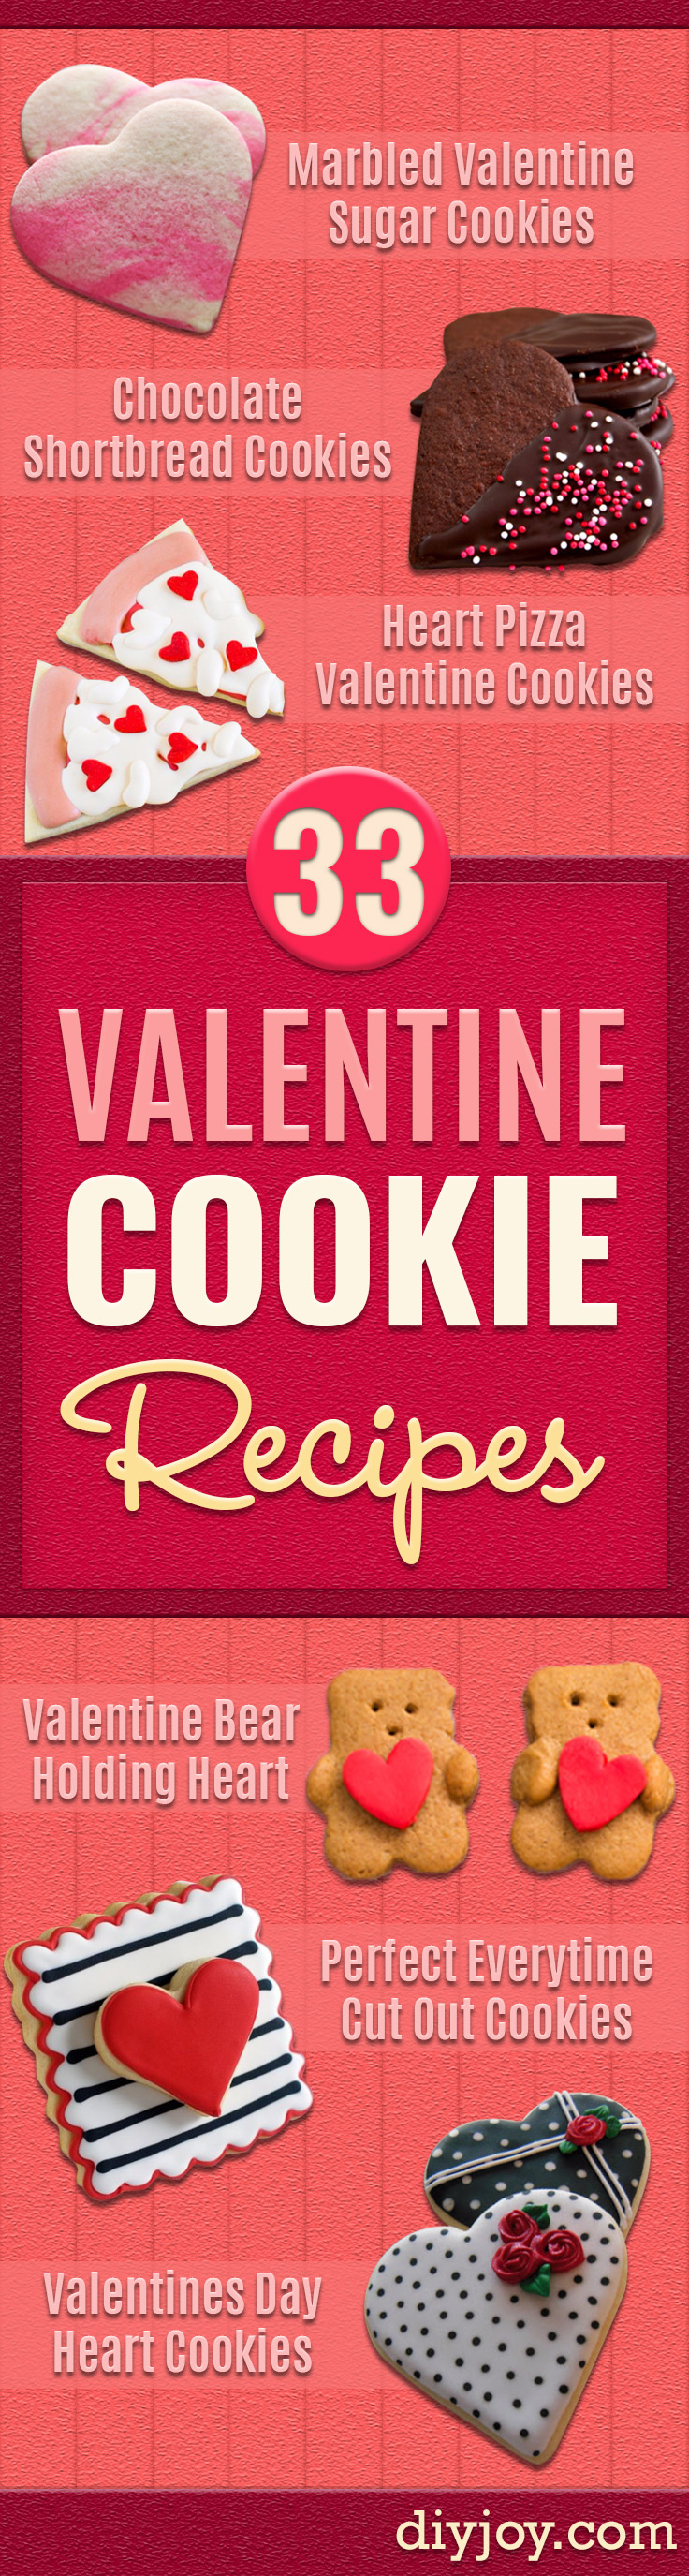 DIY Valentines Day Cookies - Easy Cookie Recipes and Recipe Ideas for Valentines Day - Cute DIY Decorated Cookies for Kids, Homemade Box Cookies and Bouquet Ideas - Sugar Cookie Icing Tutorials With Step by Step Instructions - Quick, Cheap Valentine Gift Ideas for Him and Her http://diyjoy.com/diy-valentines-day-cookie-recipes